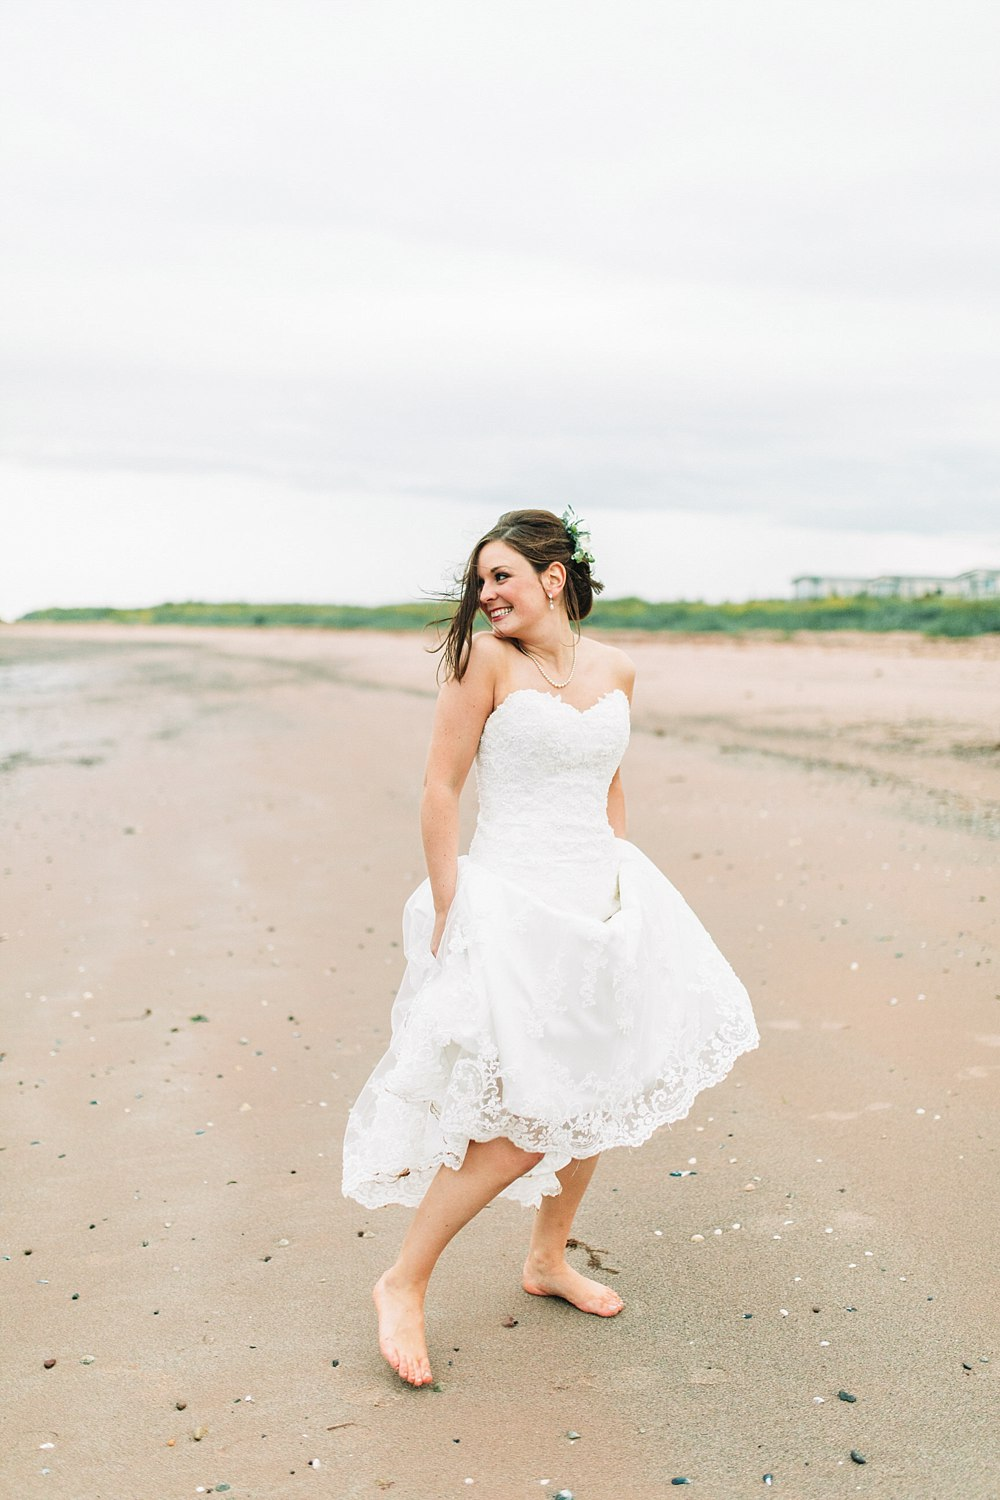 creative romantic relaxed light airy wedding photographers Scotland 5-9.jpg